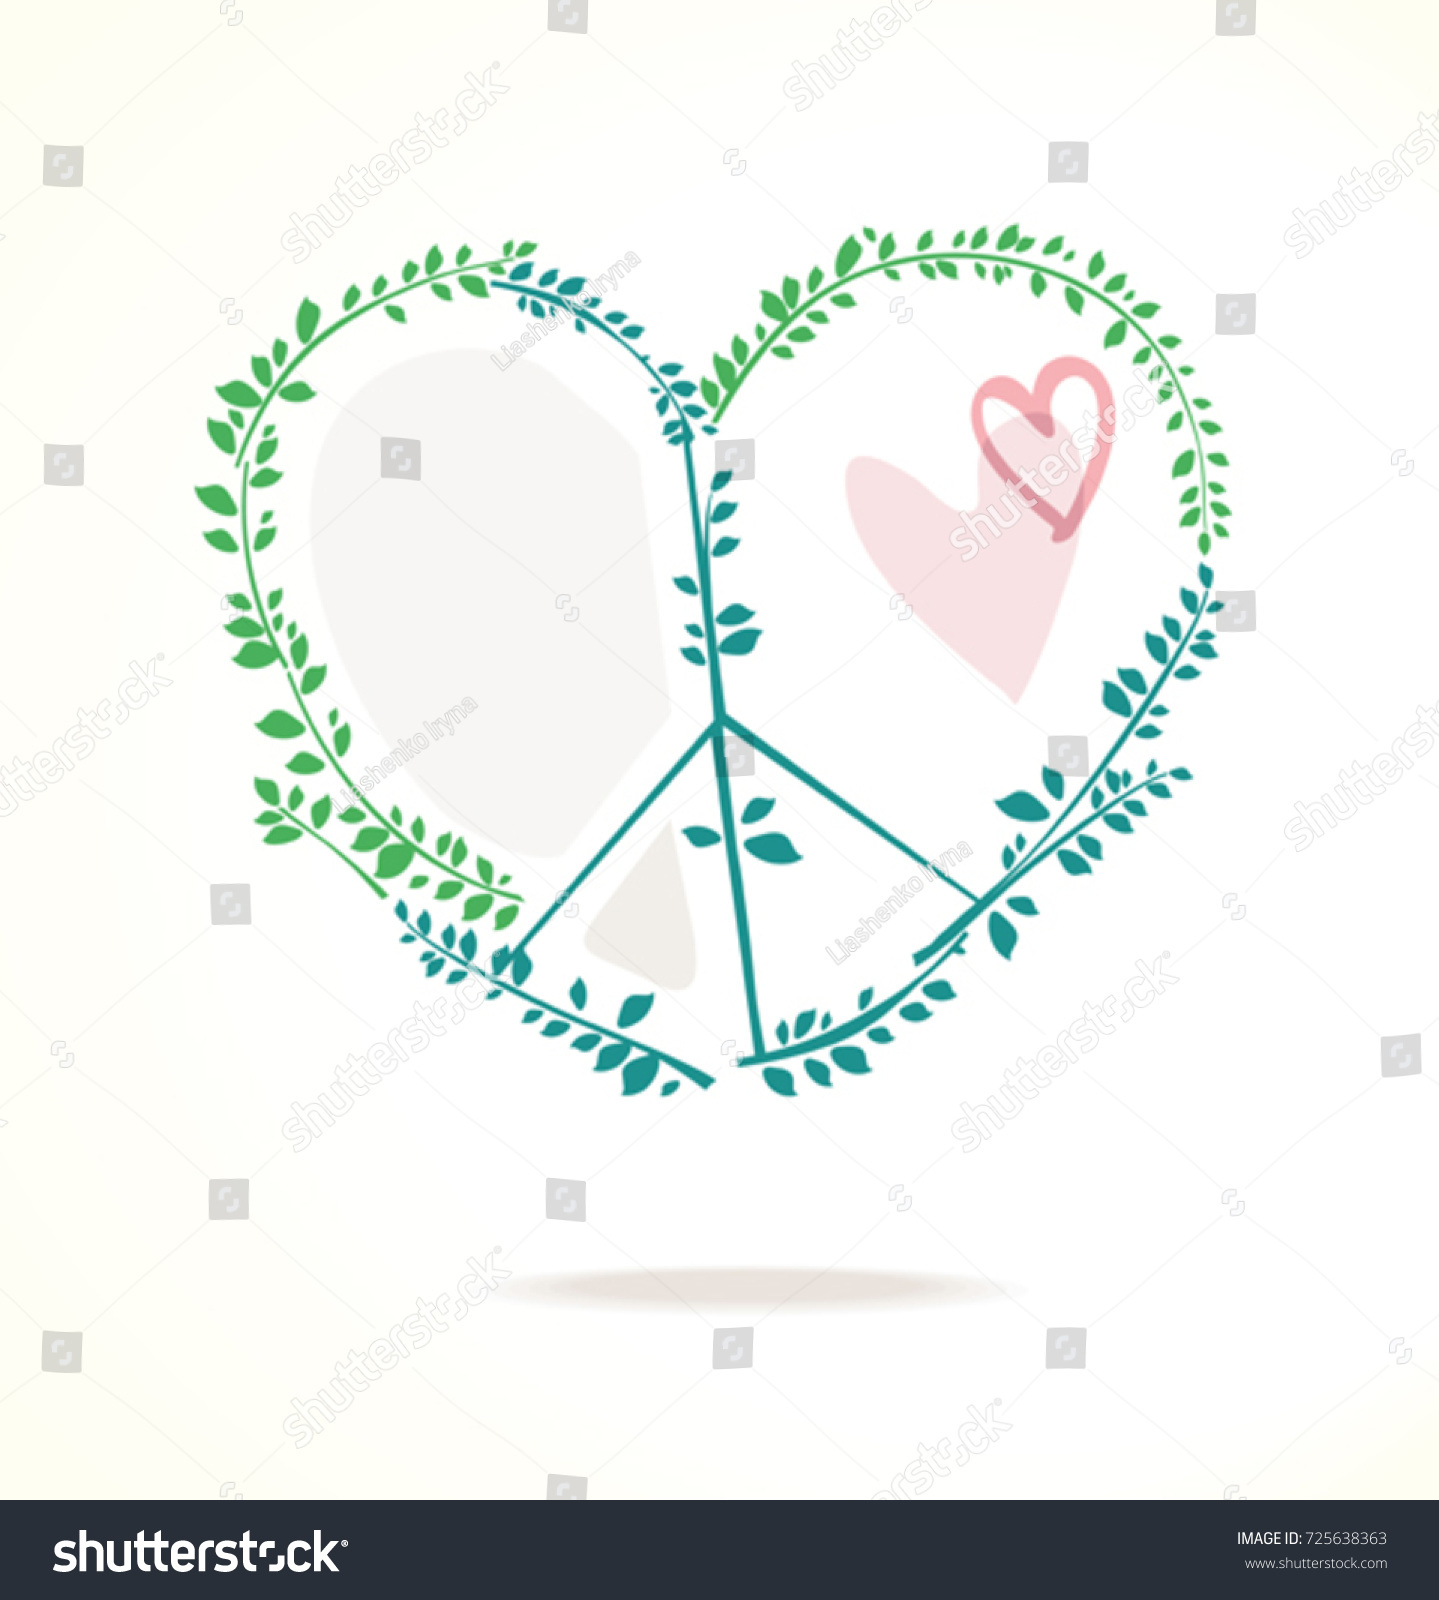 Vector icon combination peace symbol heart stock vector 725638363 vector icon of a combination of peace symbol with heart and green foliage biocorpaavc